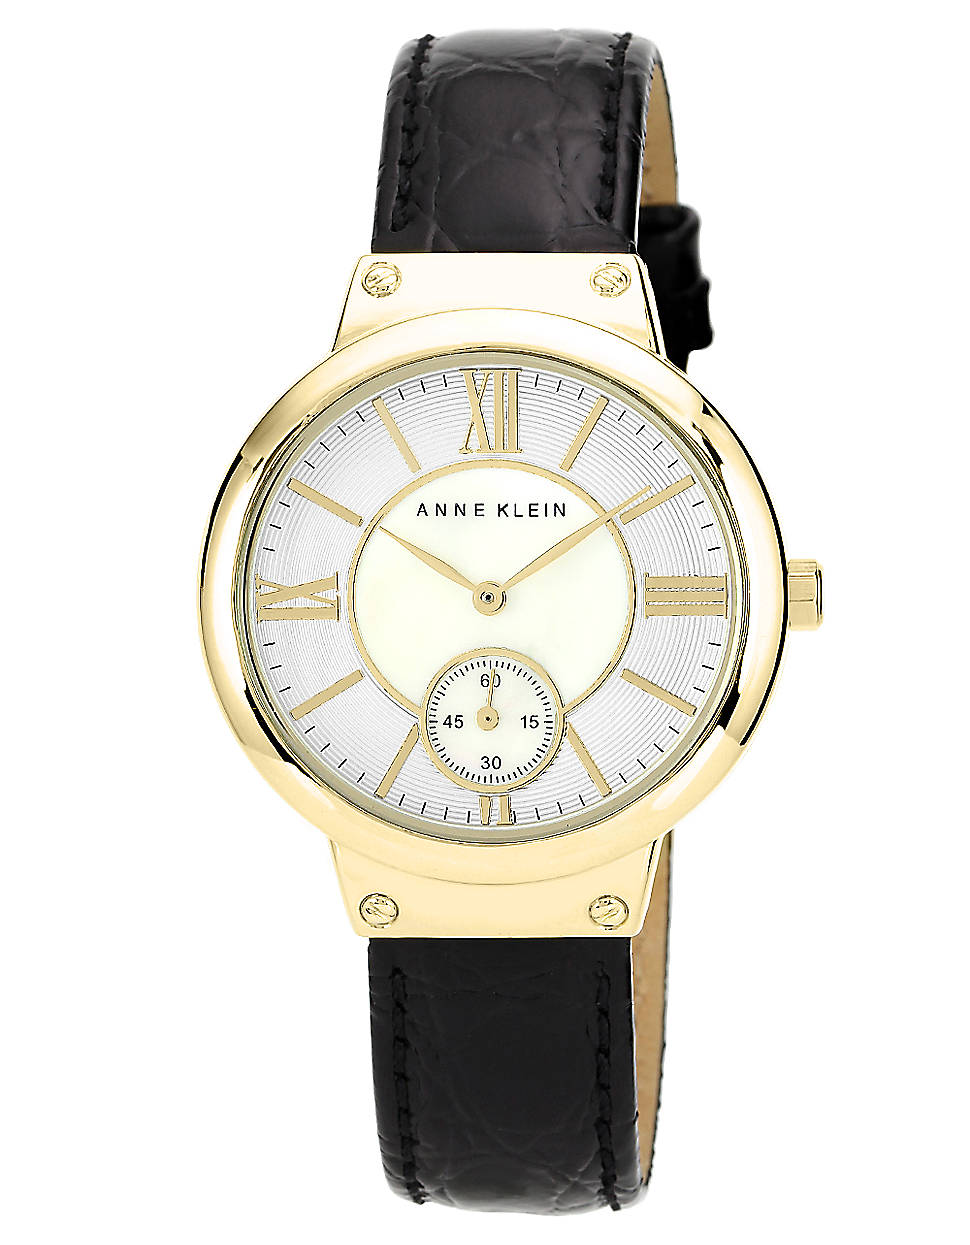 Anne klein goldtone watch with genuine leather strap in black for men lyst for Anne klein leather strap